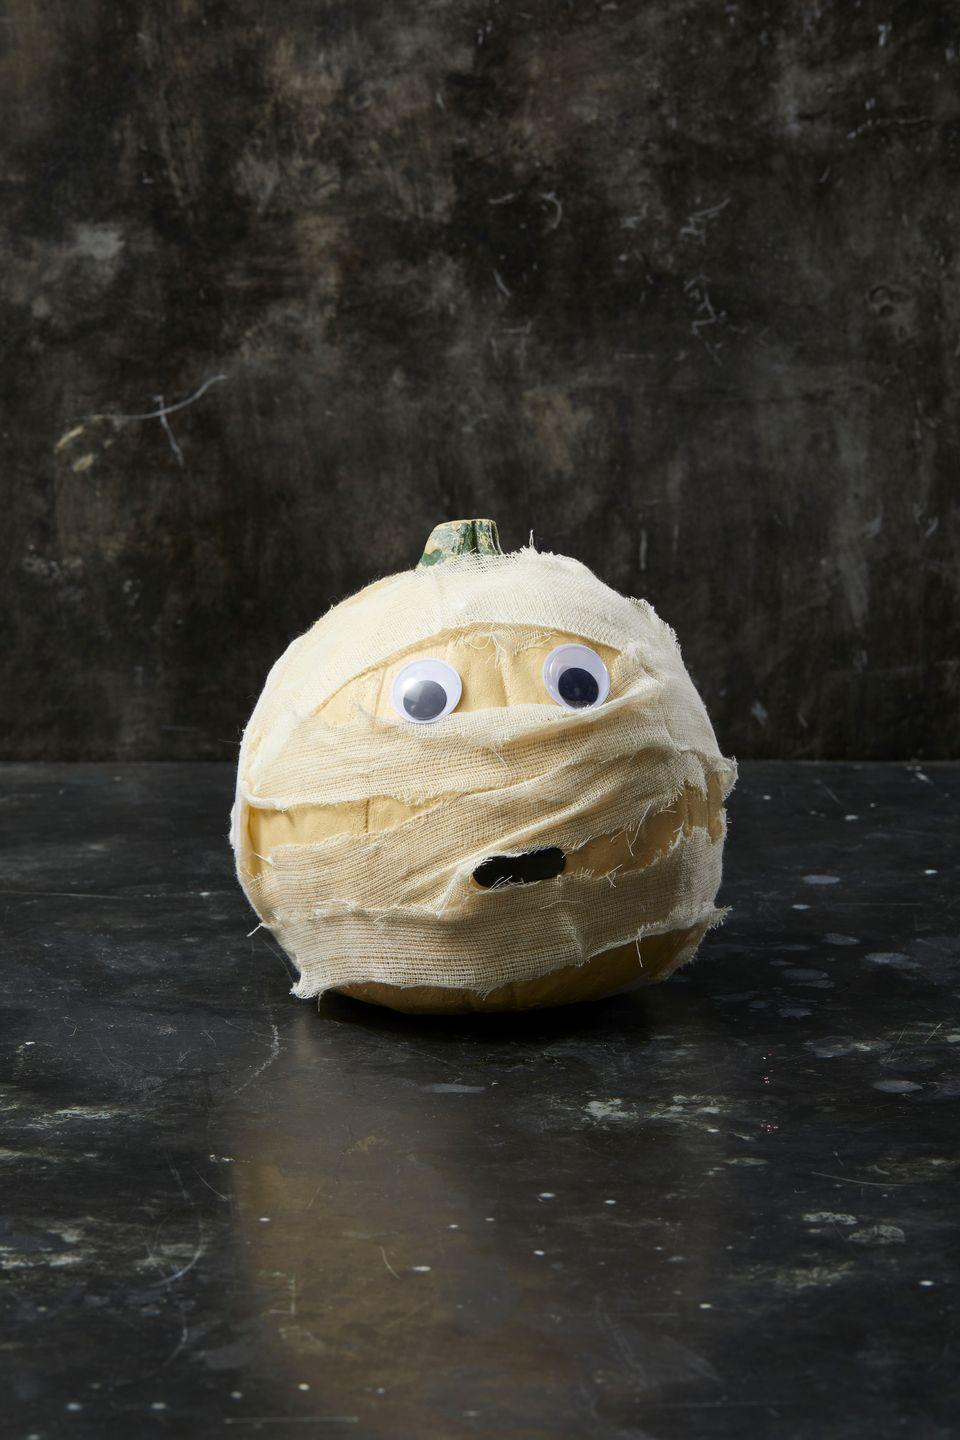 <p>To make this little guy, cut cheesecloth into 3-inch strips. Then put a dot of hot glue to start and wrap the pumpkin with the cheesecloth strips. Glue down the strips when you get to the end to ensure they stay in place. Once you are happy with the wrapping, attach two googley eyes to the face. Cut out a small mouth from paper and glue it under some of the cloth. </p>